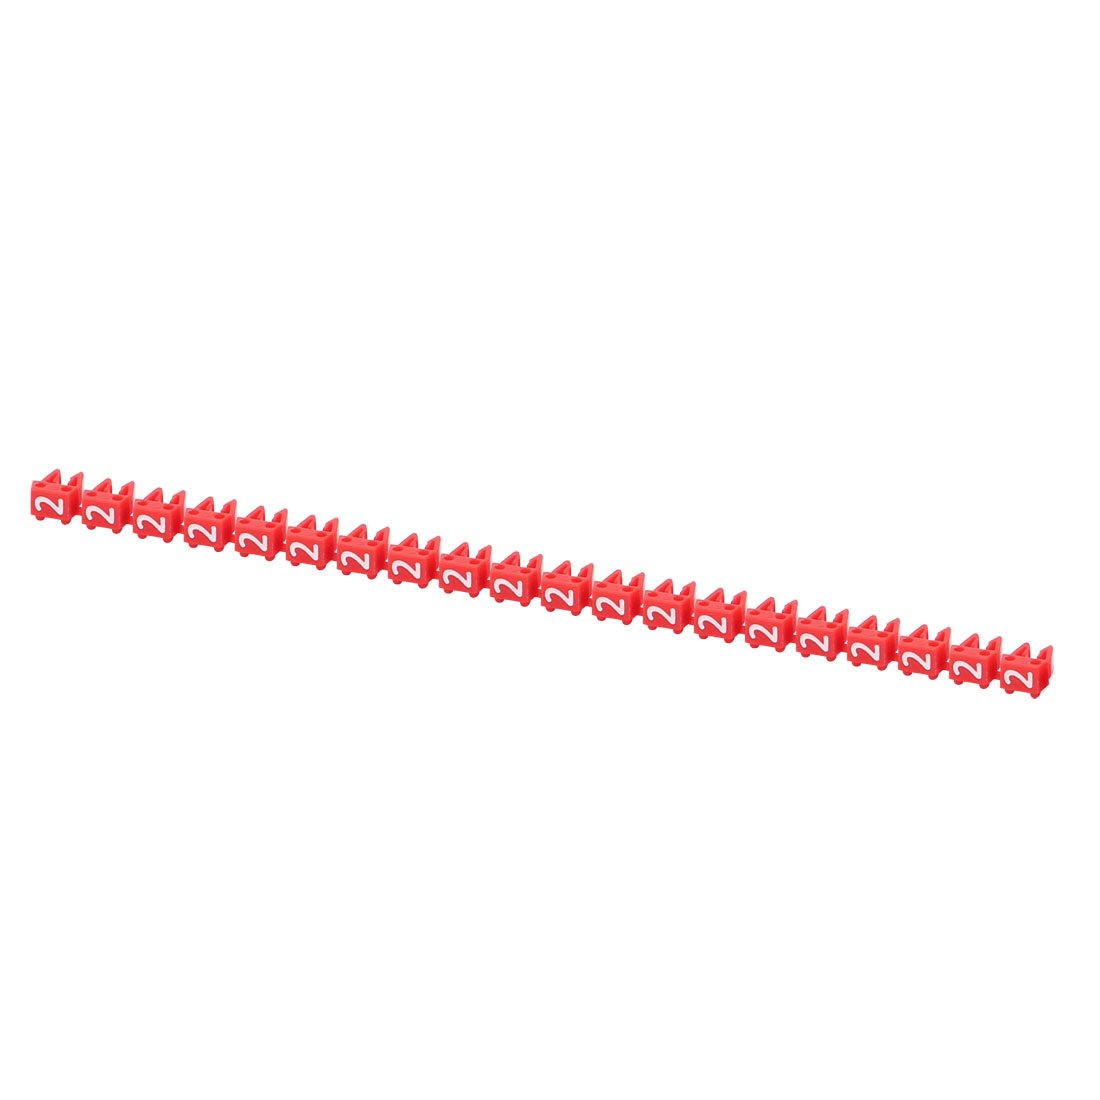 20Pcs Letters 2 Network Cable Labels Markers Red for 1.0-3.0mm Dia Cable